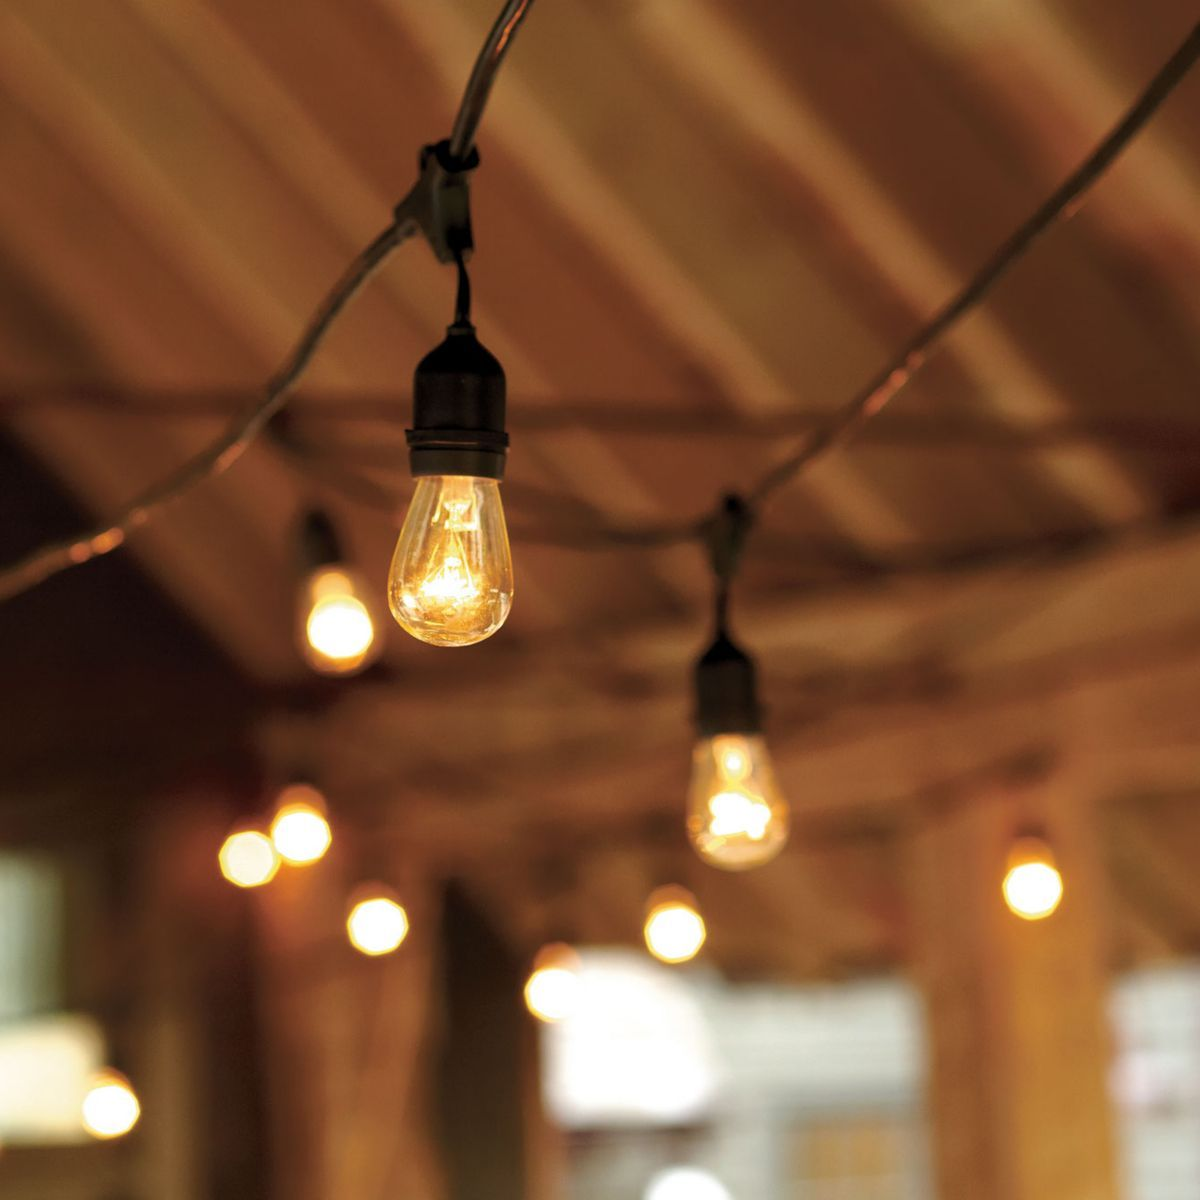 Vintage string lights the lights i want for our barn upstairs vintage string lights the lights i want for our barn upstairs loveee workwithnaturefo